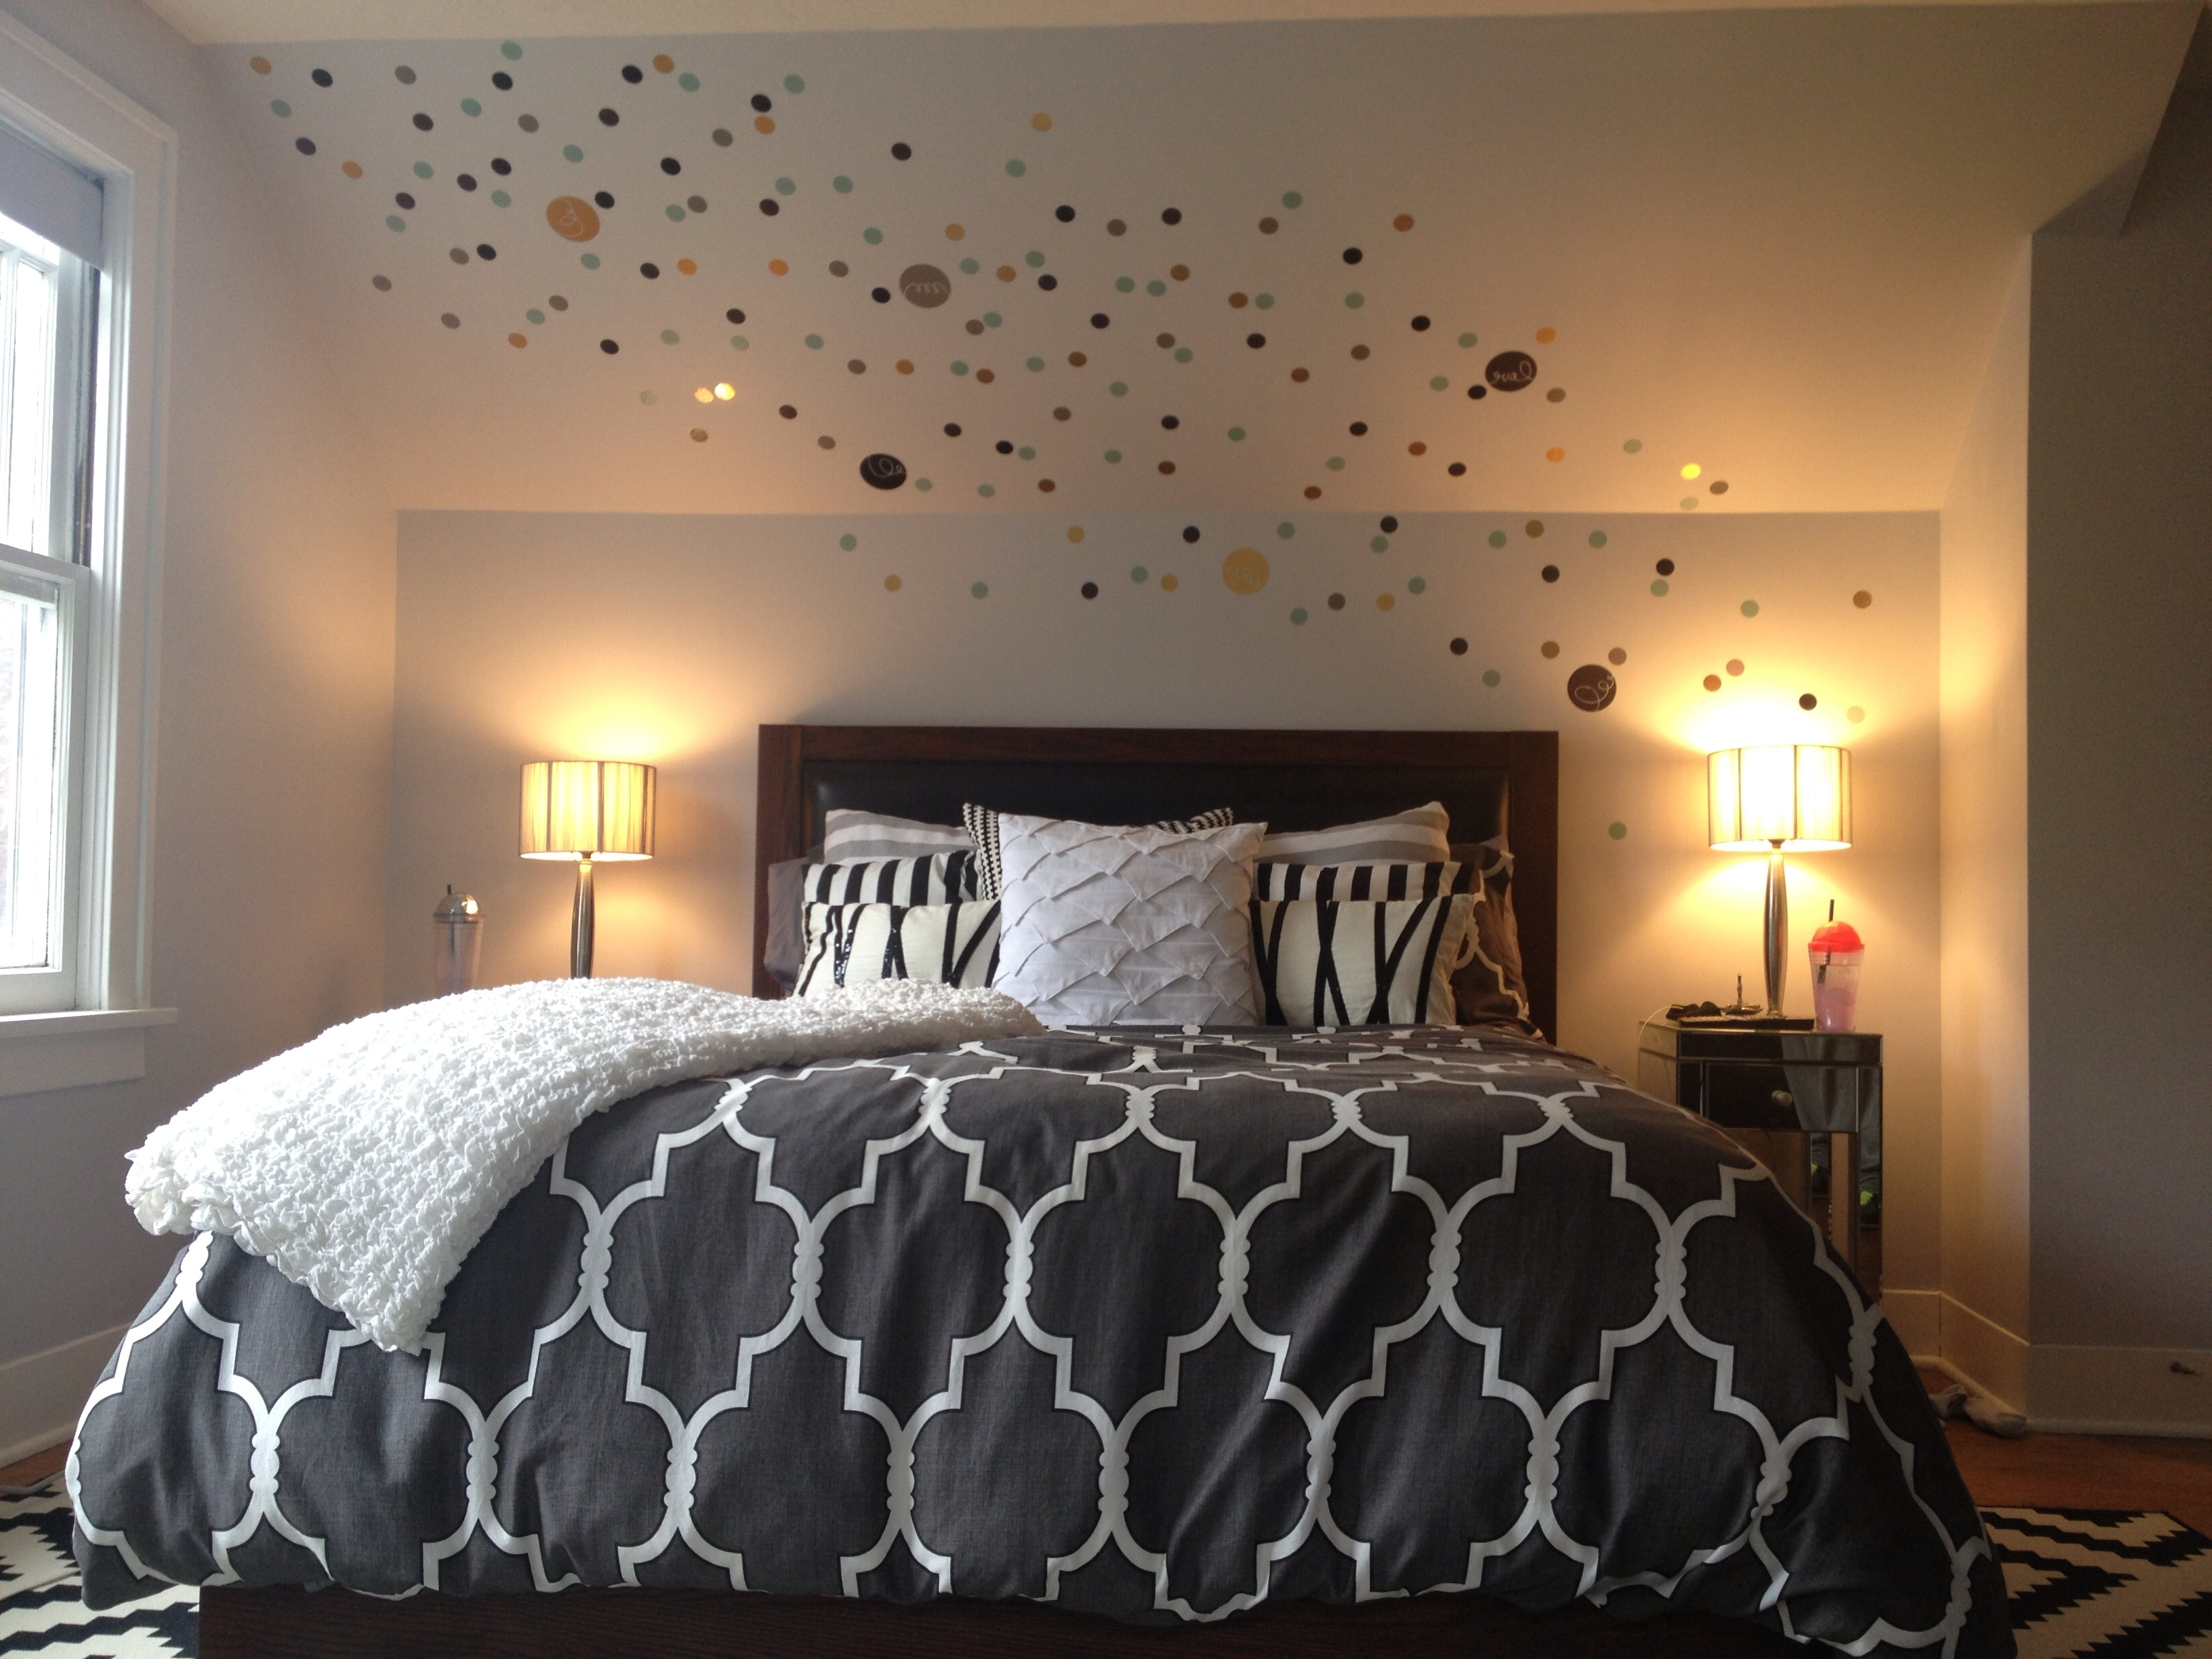 Bed Wall Art In Most Recent Wall Decorations For Bedroom New Bedroom Lovely Master Bedroom (View 2 of 15)